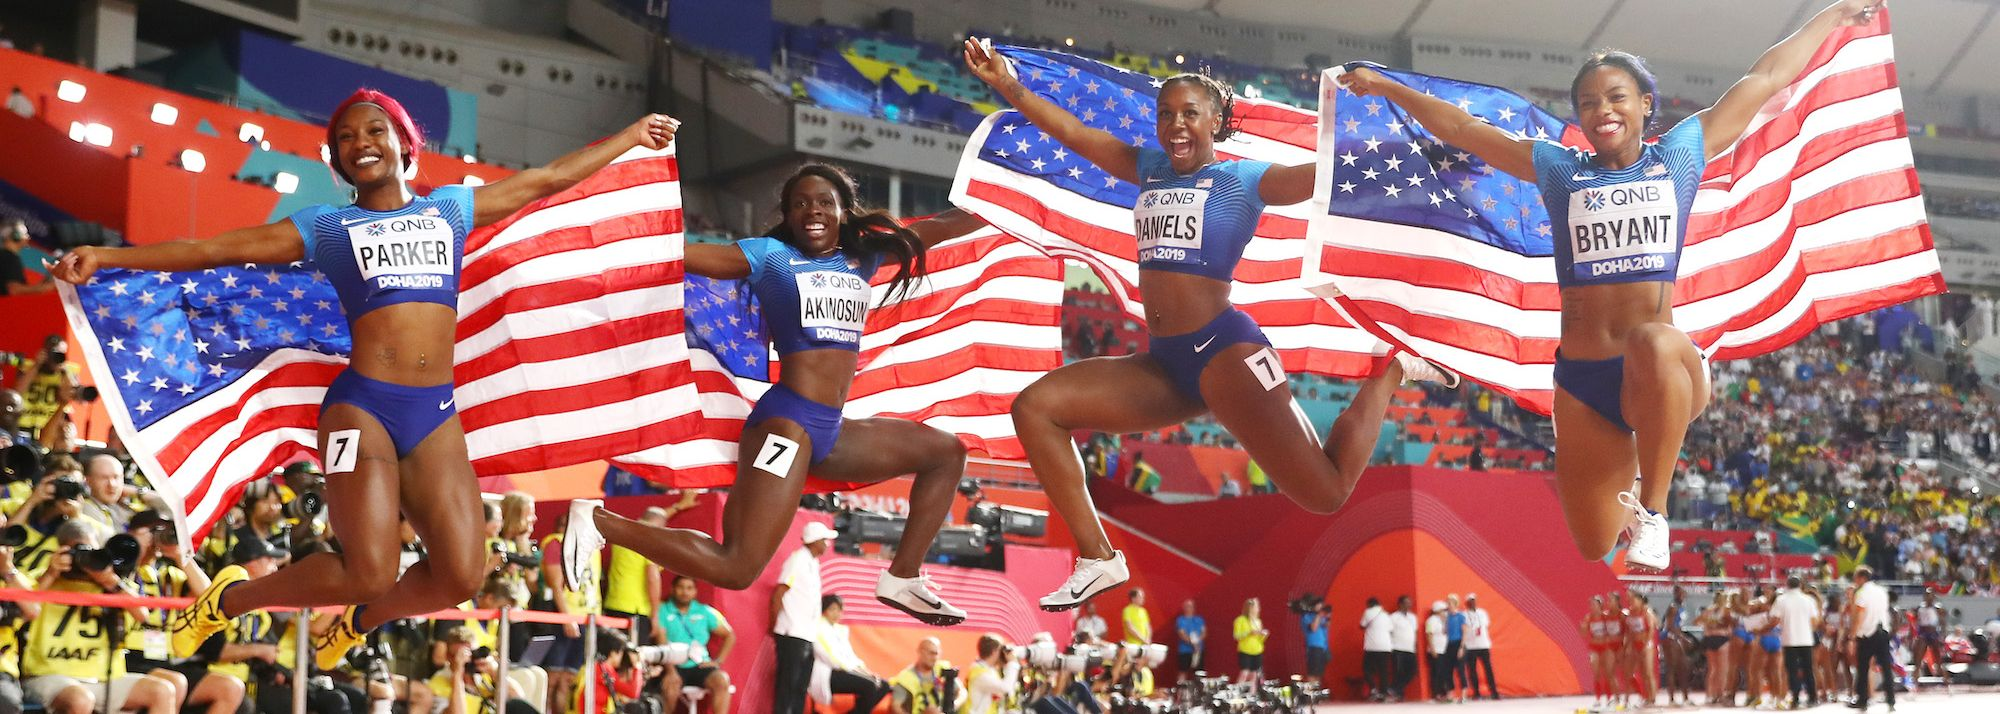 TEAM USA COMPETES ON HOME SOIL IN 2022